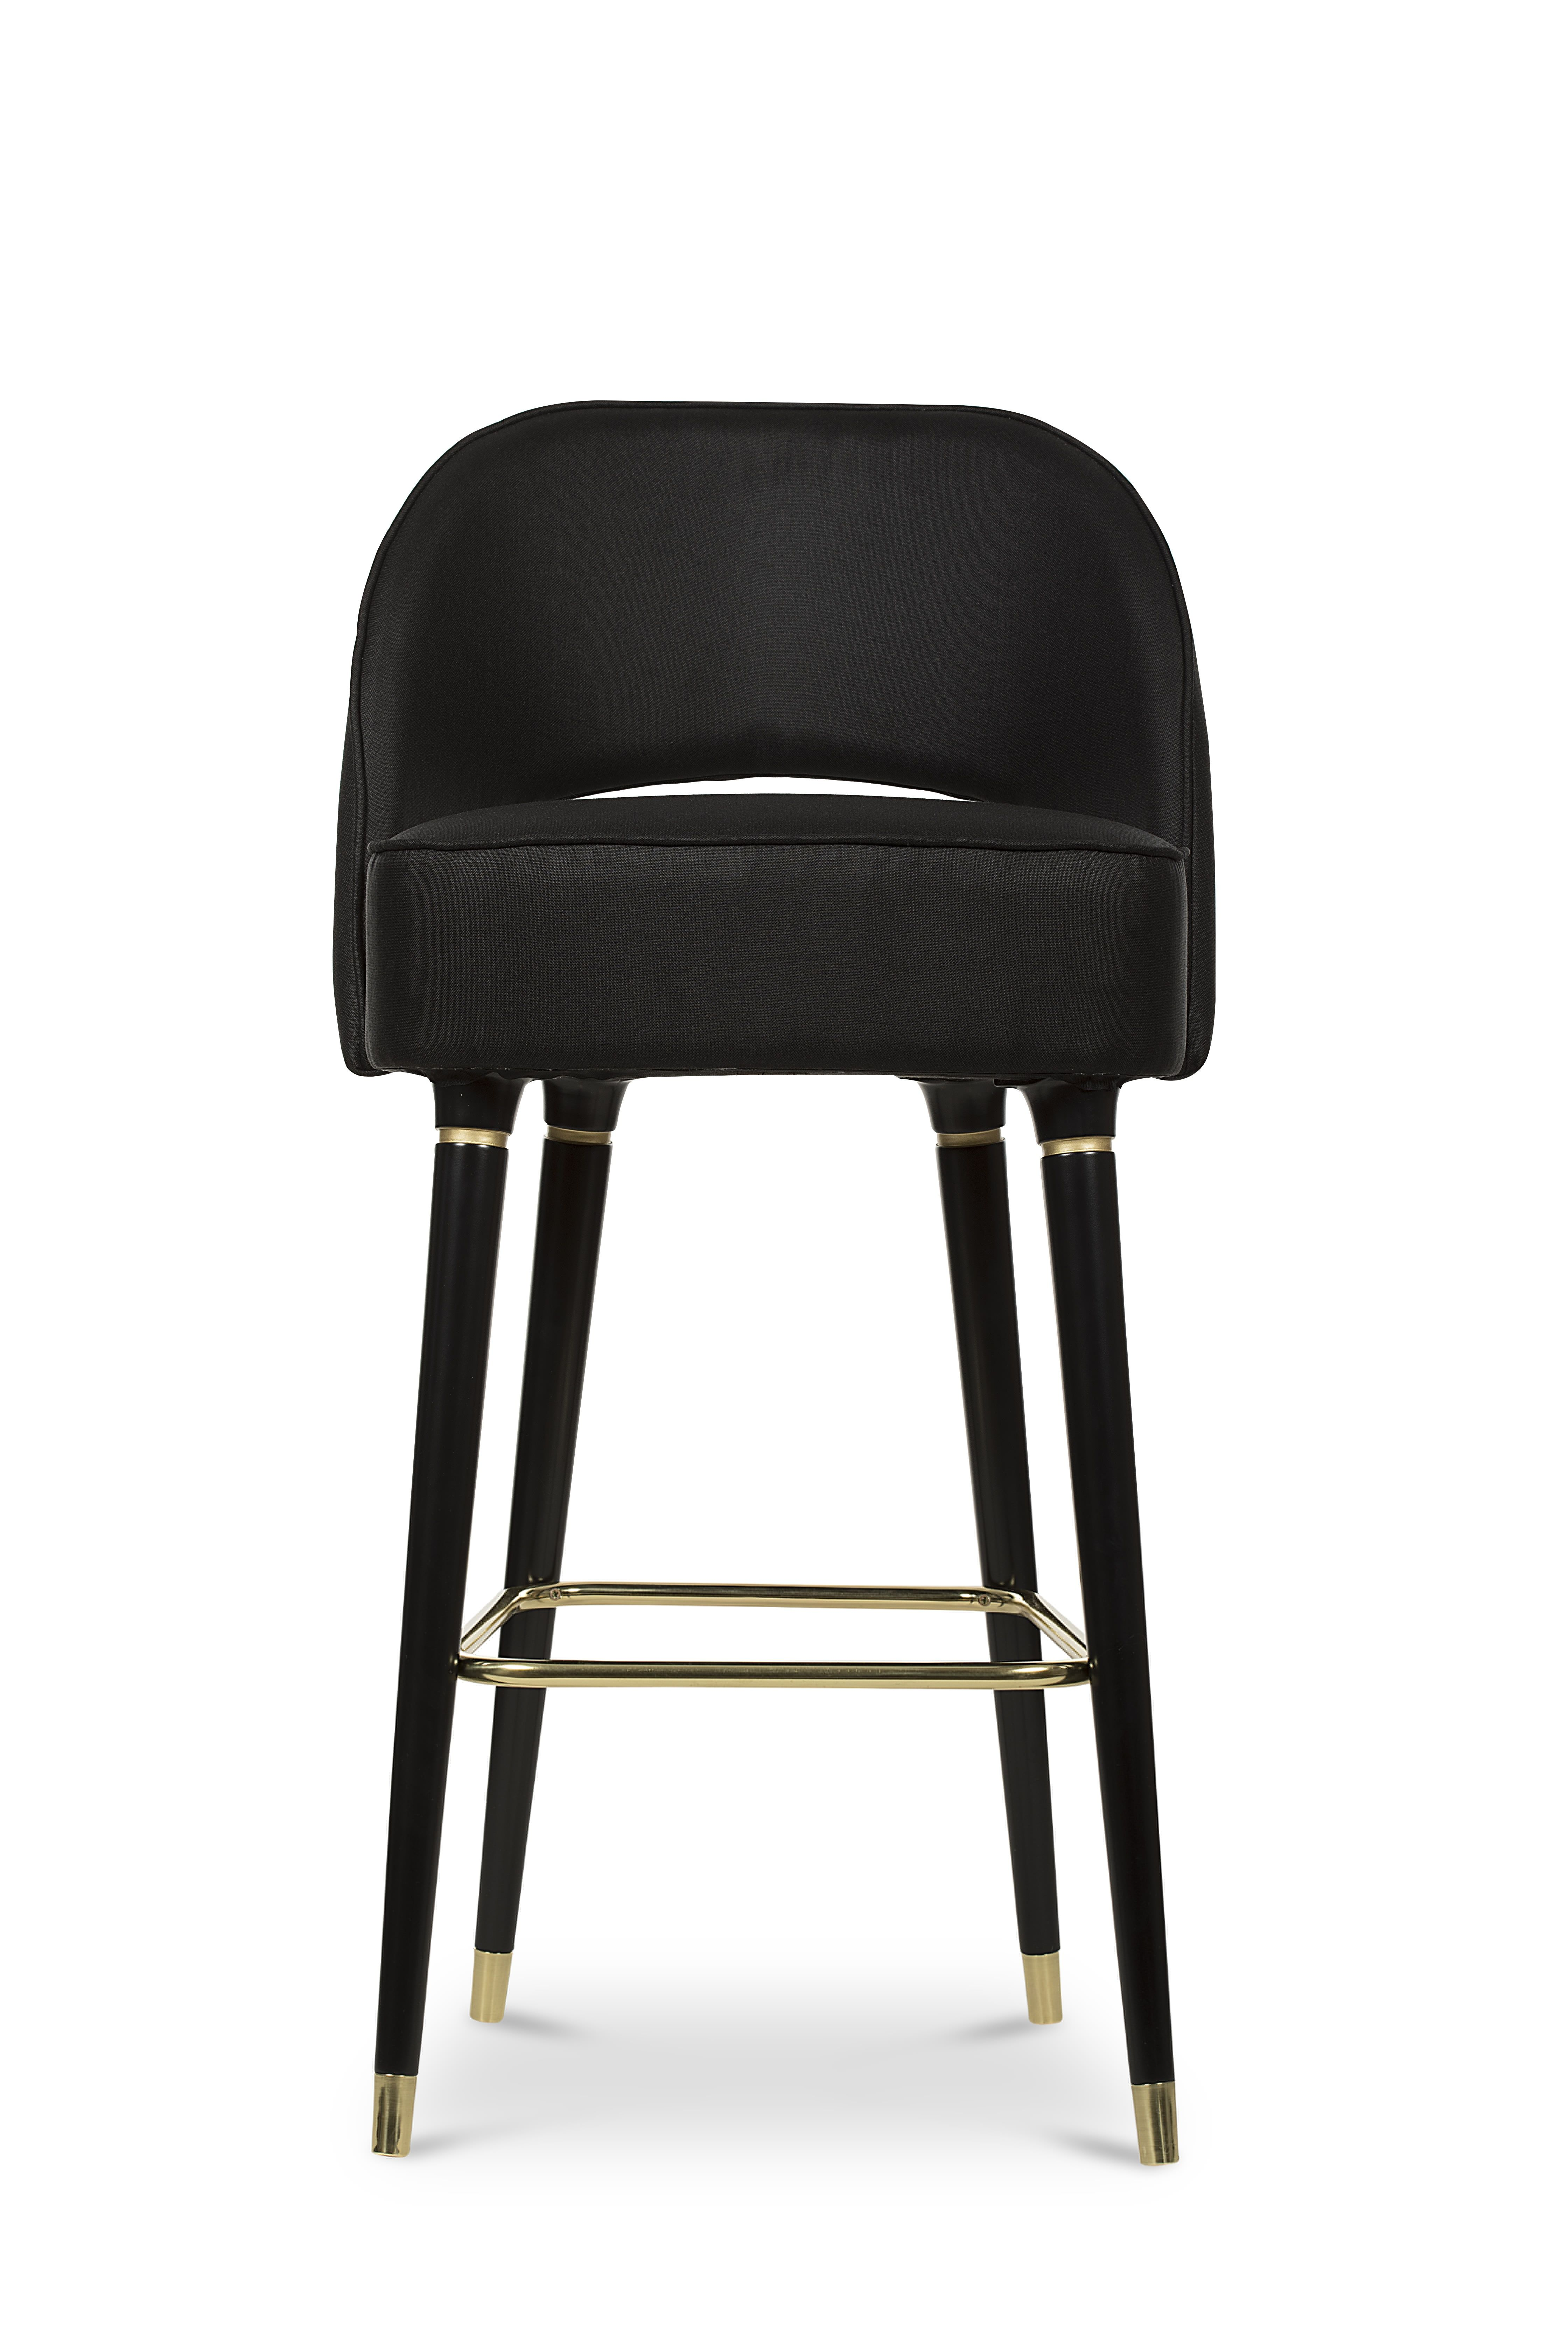 Buy Collins Bar Chair By Carlyle Collective Made To Order Designer Furniture From Dering Hall S Collect Bar Chairs Design Bar Chairs Upholstered Bar Stools